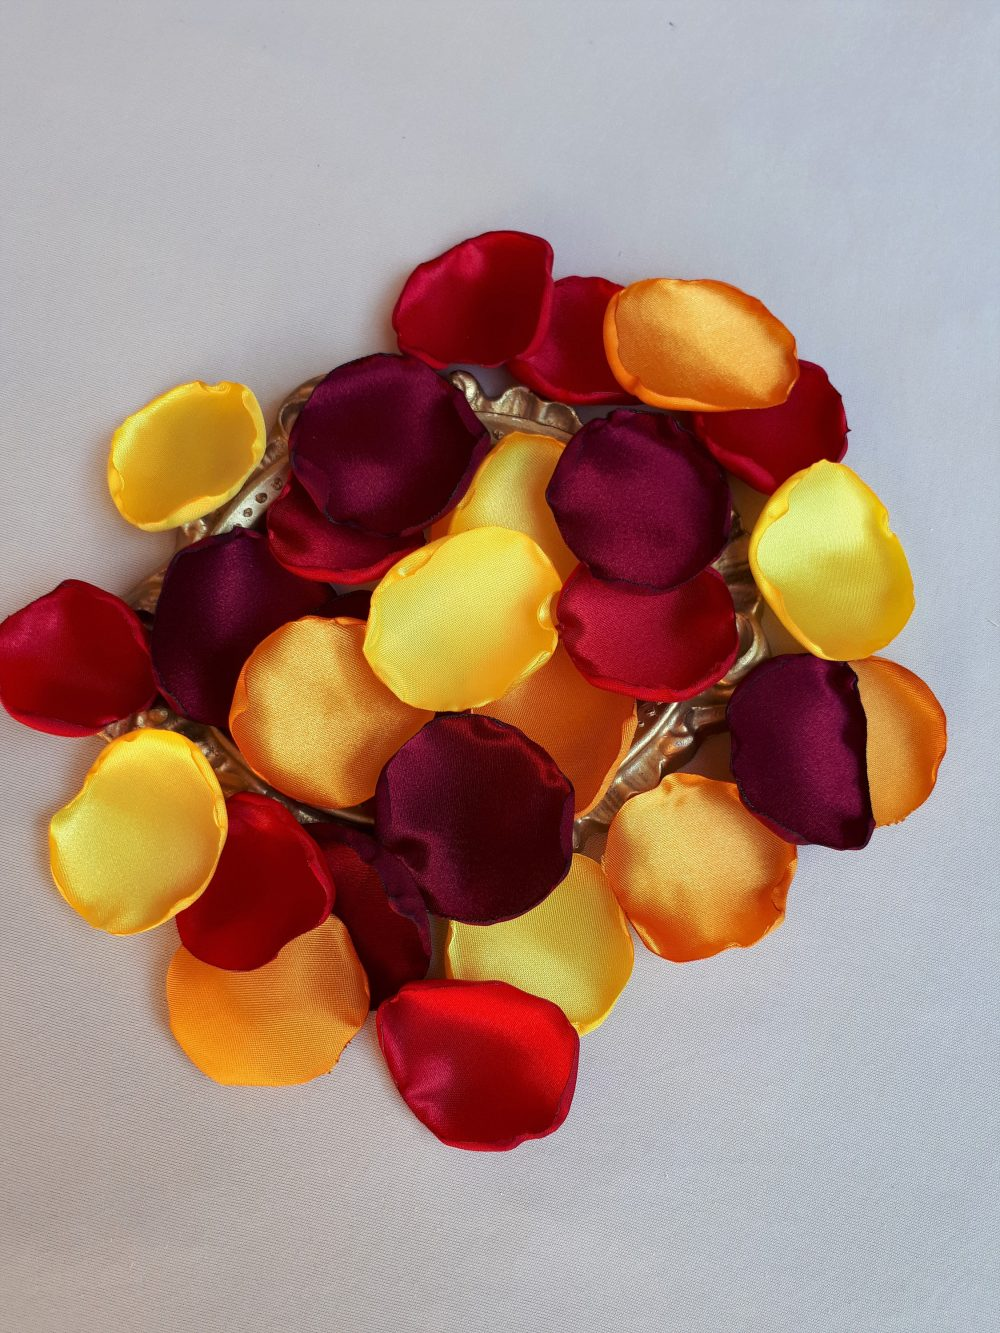 New Burgundy Rose Petals Red Orange Flower Yellow Country Wedding Decor Barn Fall Autumn Colors